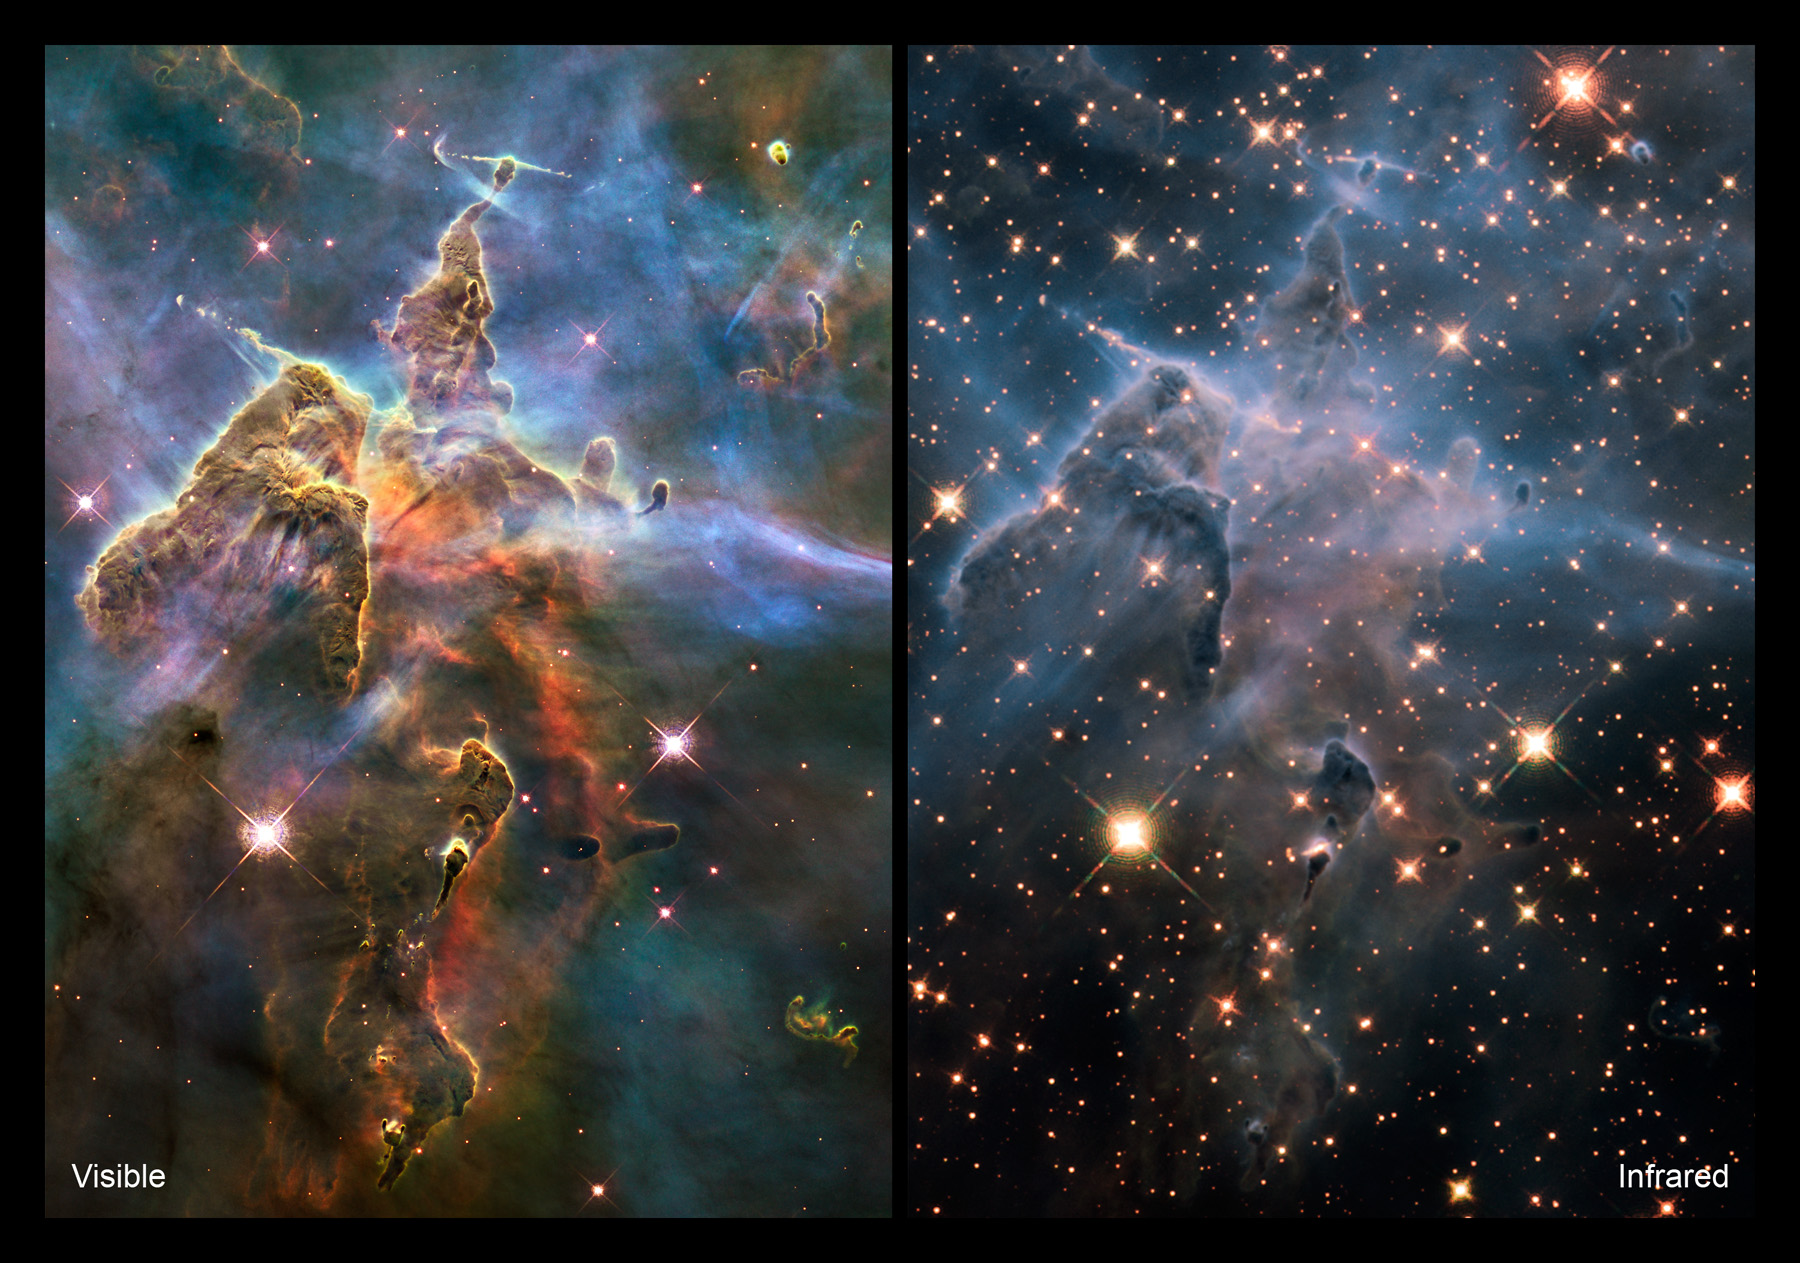 حقوق الصورة: NASA/ESA/M. Livio & Hubble 20th Anniversary Team (STScI)